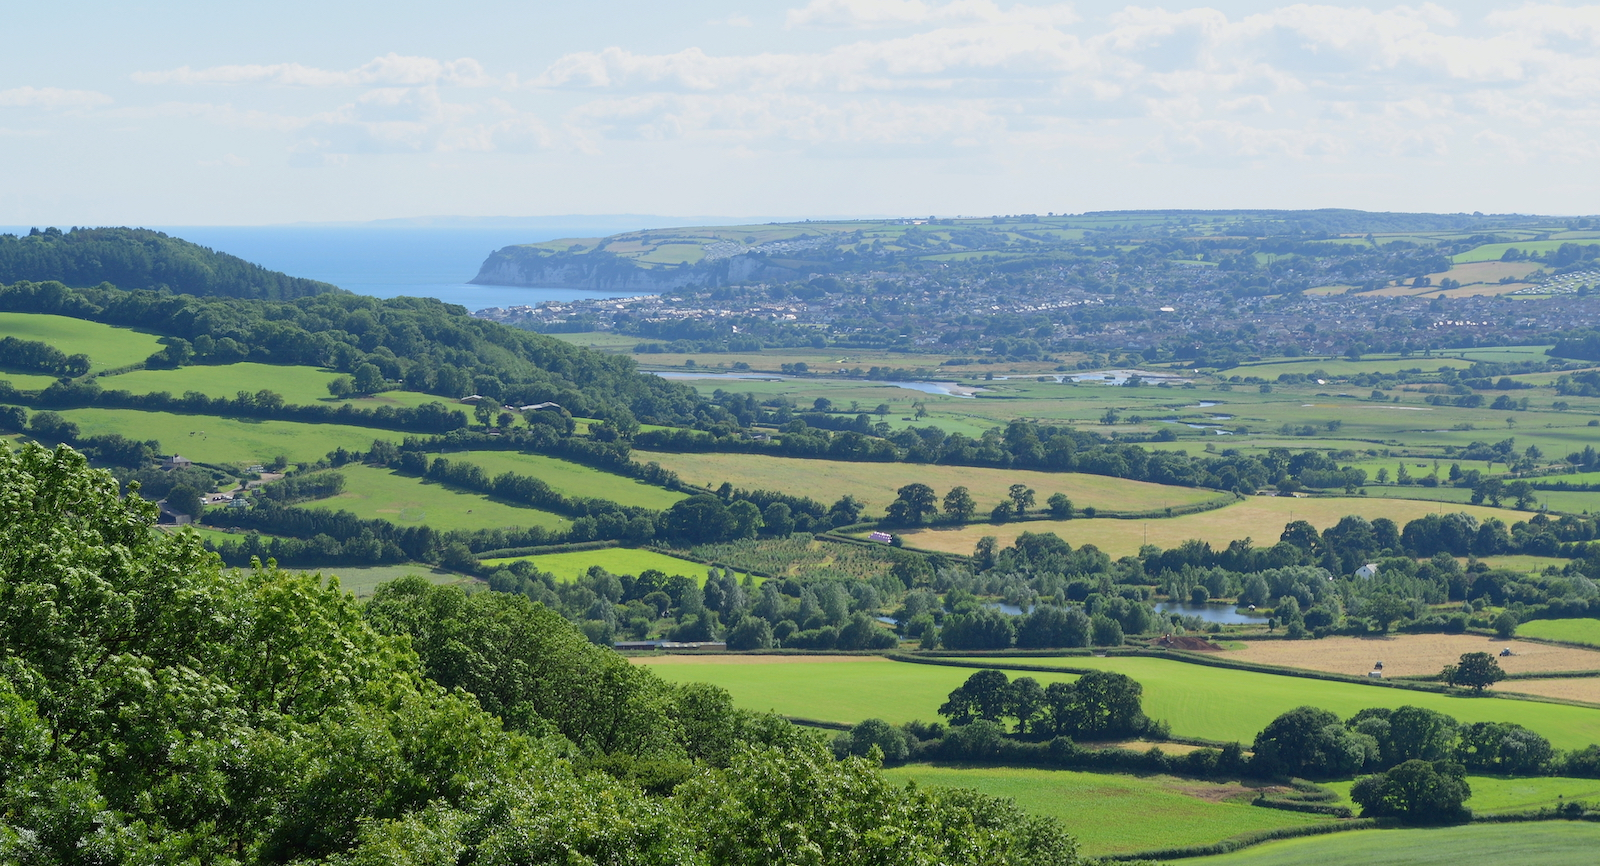 Buying a holiday home in East Devon